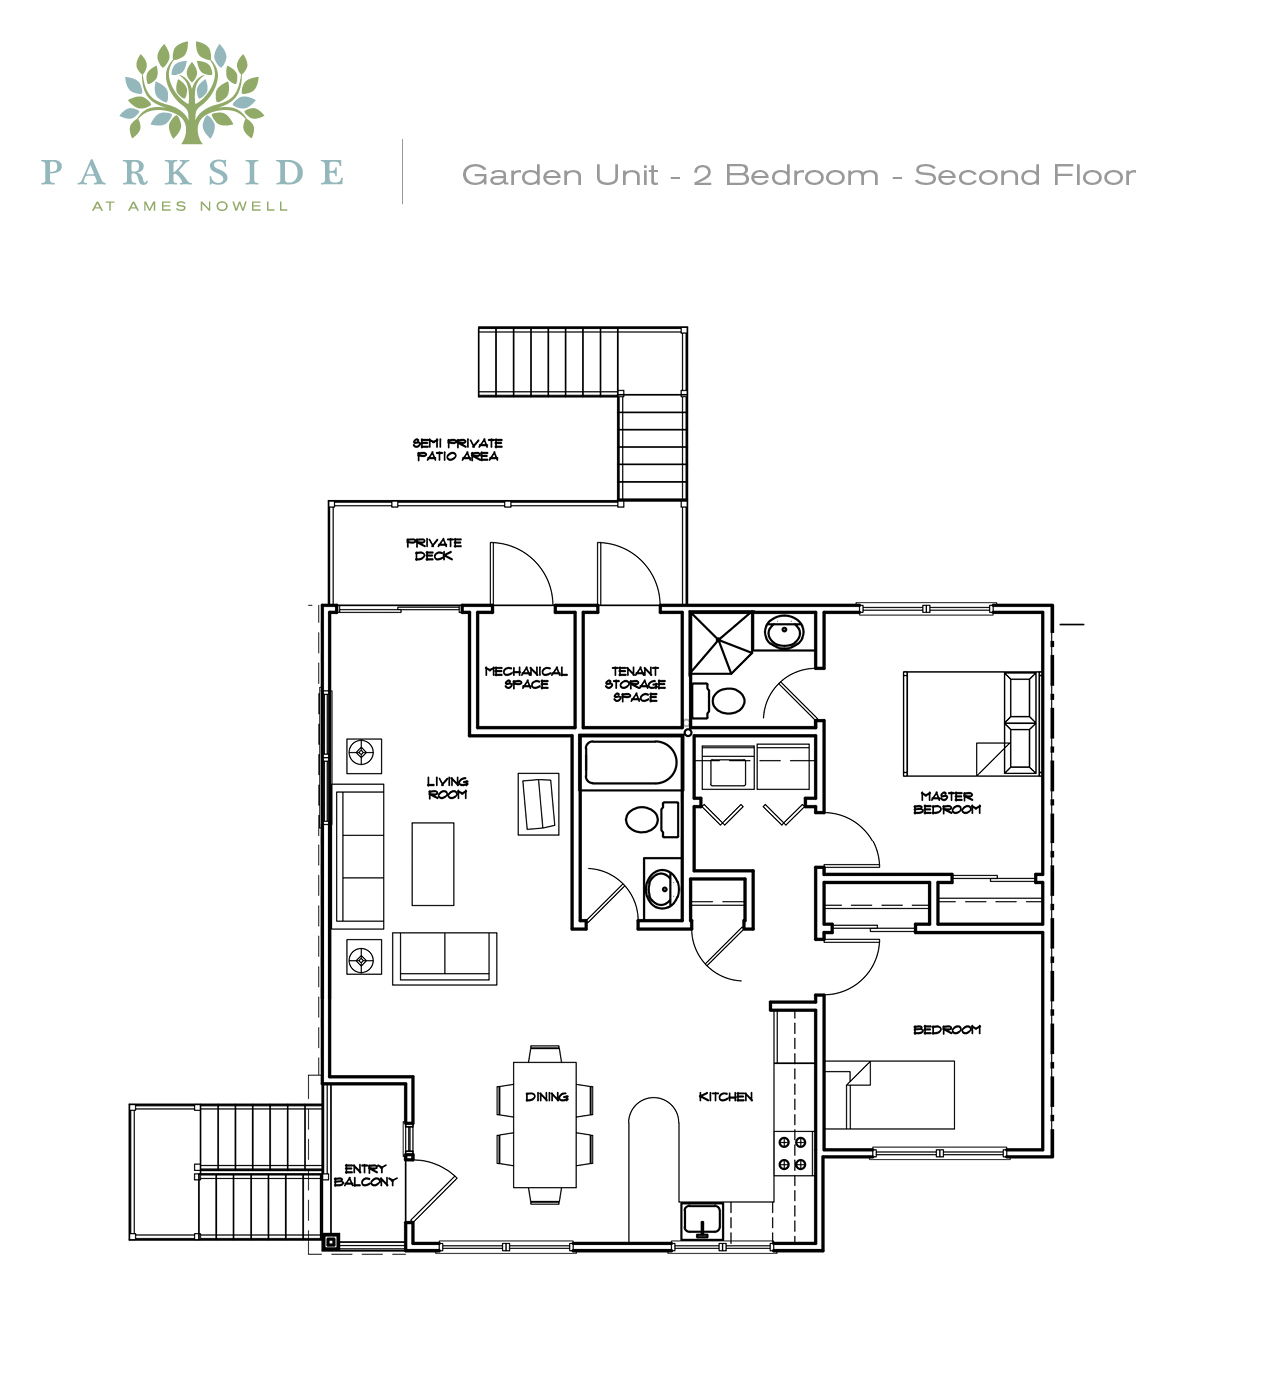 Parkside 1 Garden 2 Bedroom 2nd Floor